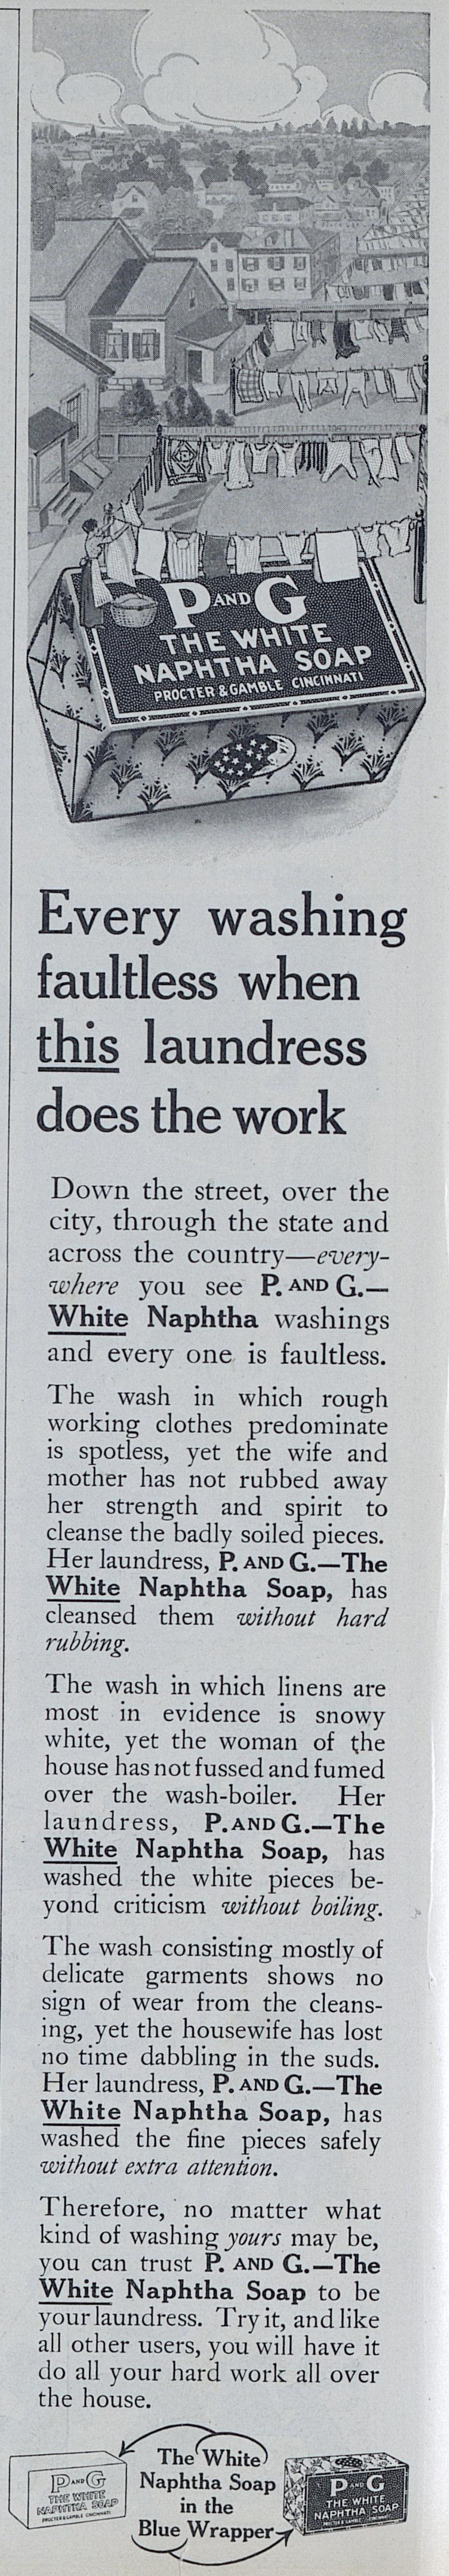 Source: Ladies Home Journal (March, 1914)